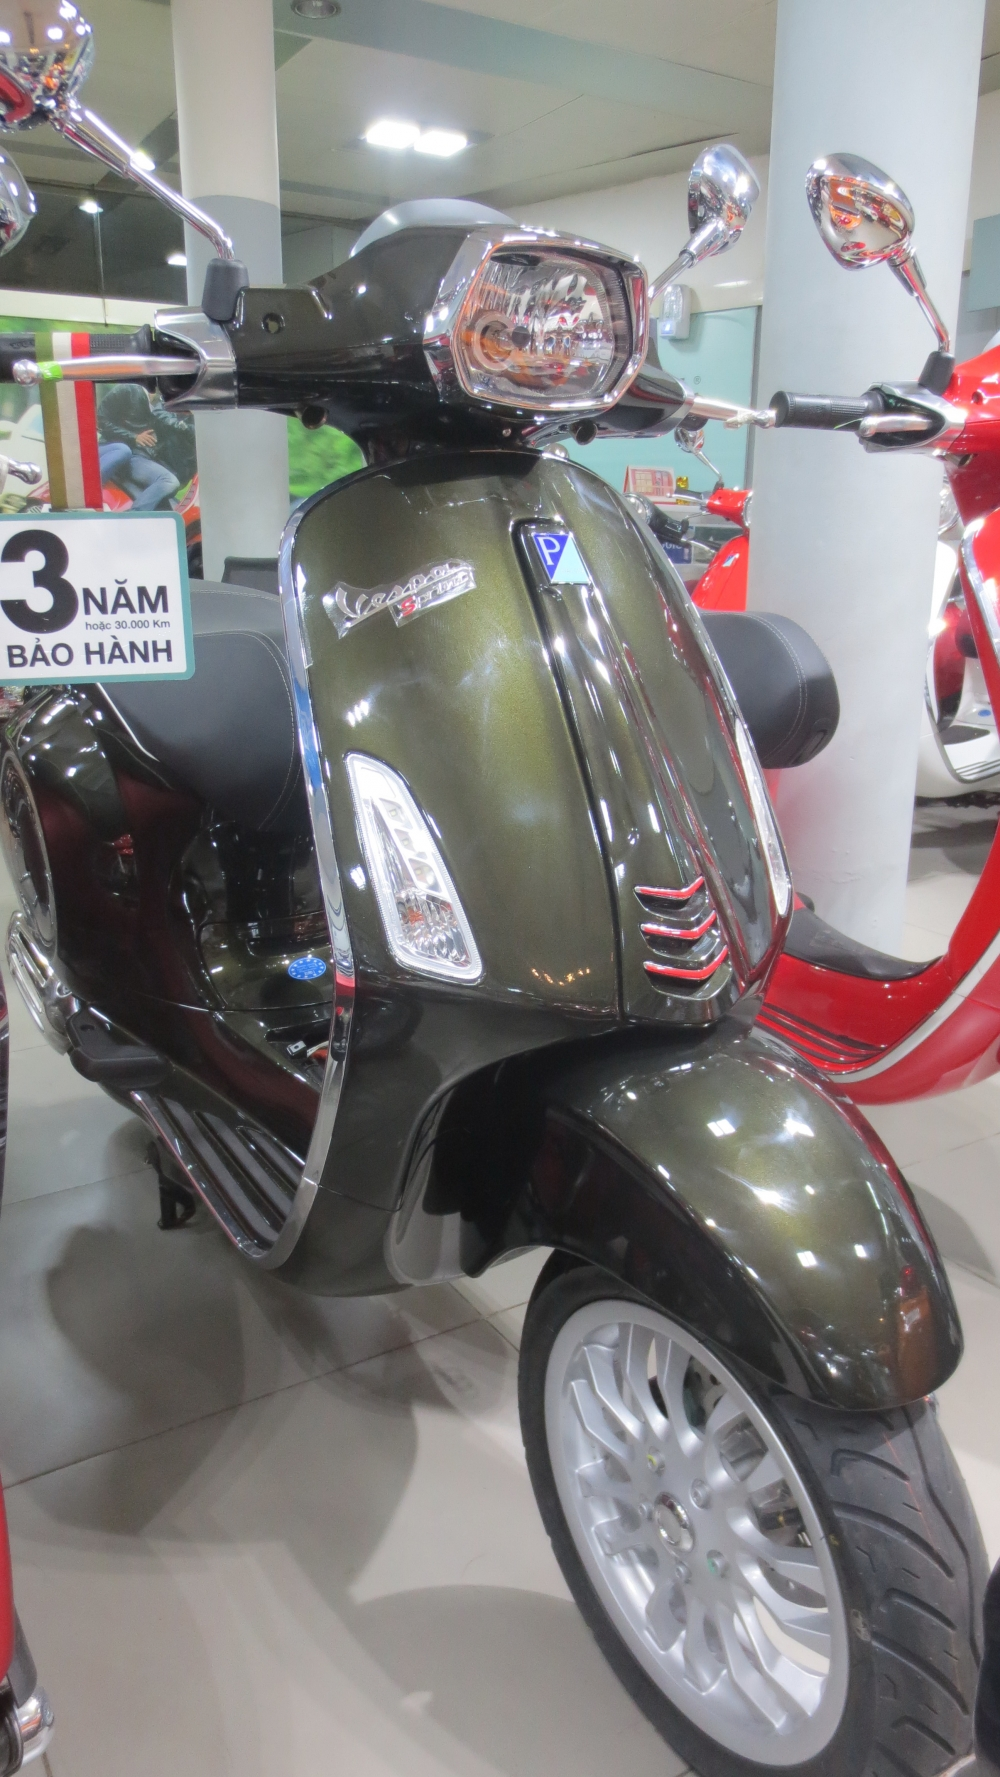 VESPA Sprint ABS chinh hang gia re nhat SG - 9